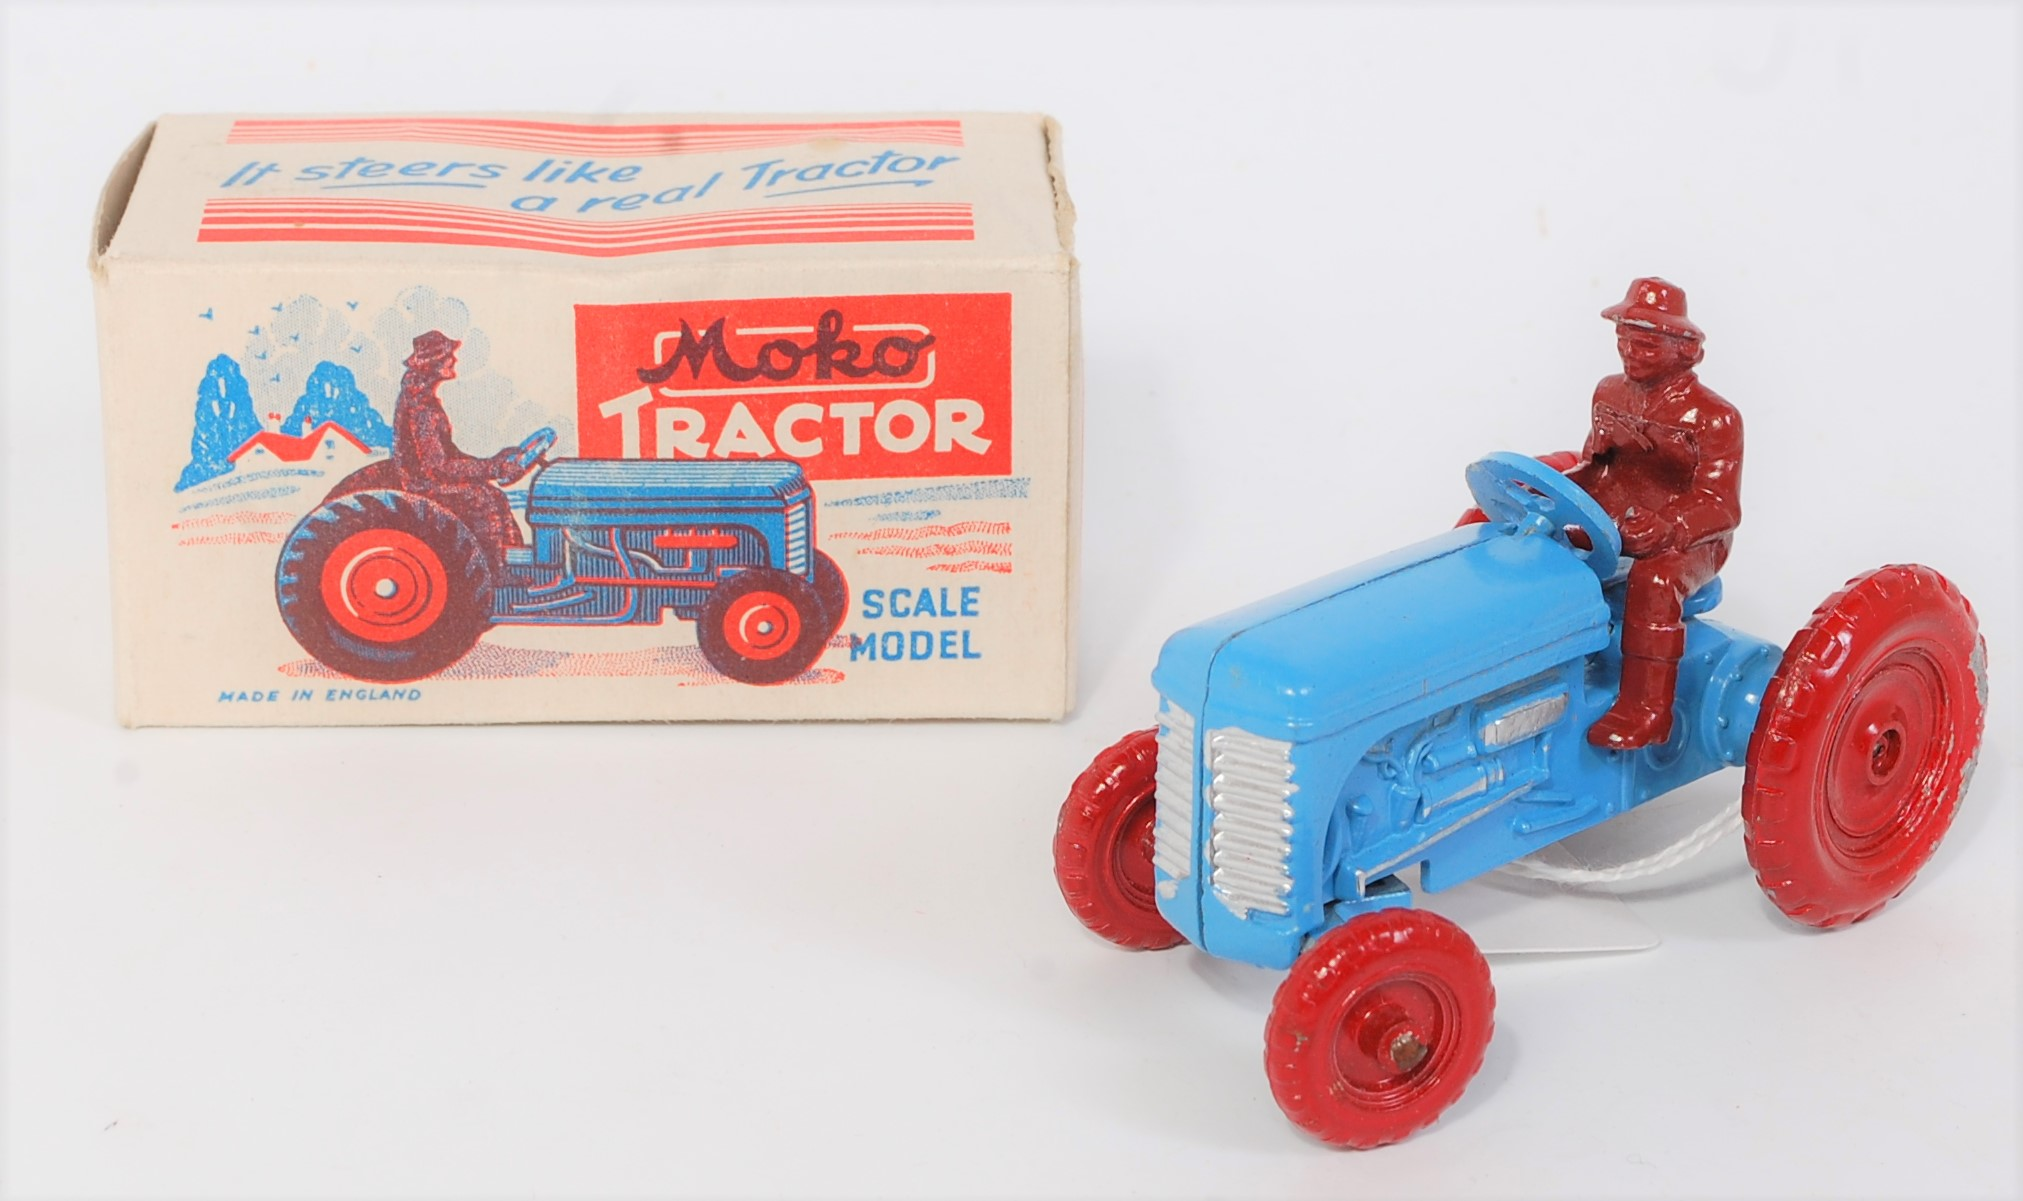 A Moko Products scale model of a tractor finished in red and blue with dark red driver figure,